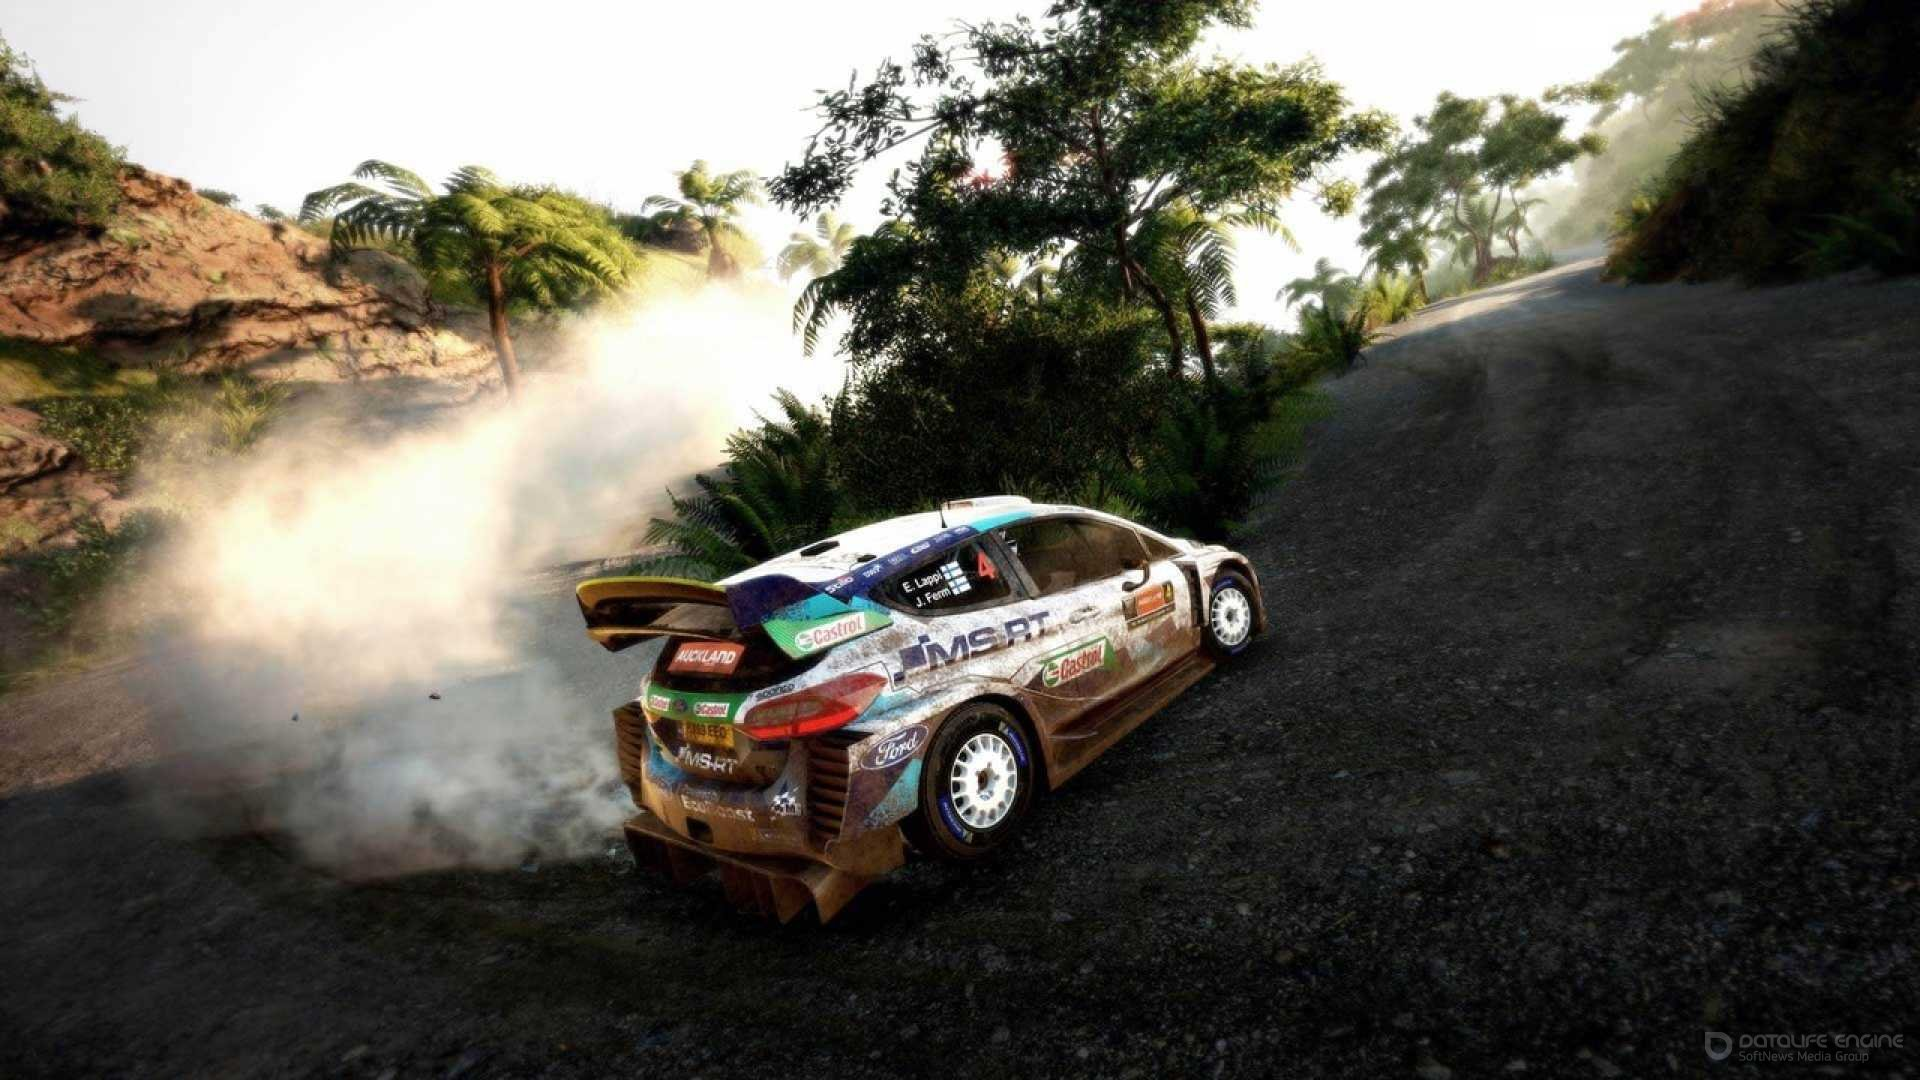 Screenshot for the game 9 WRC FIA World Rally Championship : Deluxe Edition [v 1.0 Update 2 + DLCs] (2020) torrent download RePack